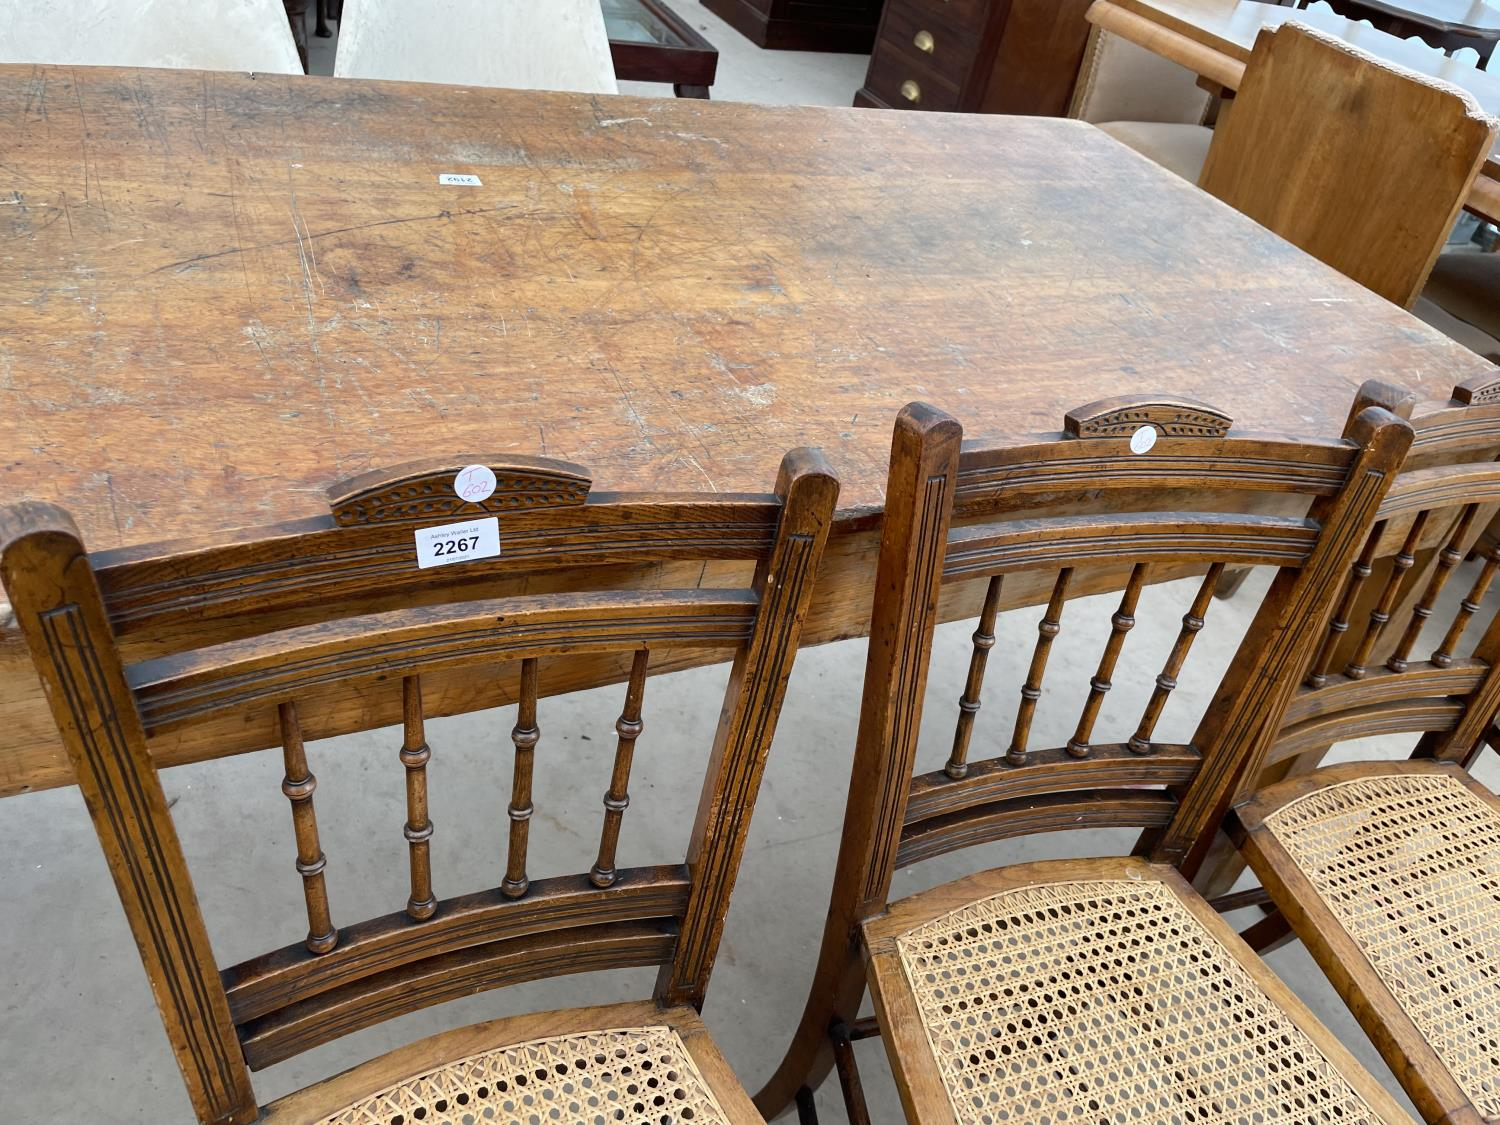 A SET OF FOUR EDWARDIAN BEDROOM CHAIRS WITH CANE SEATS - Image 2 of 5